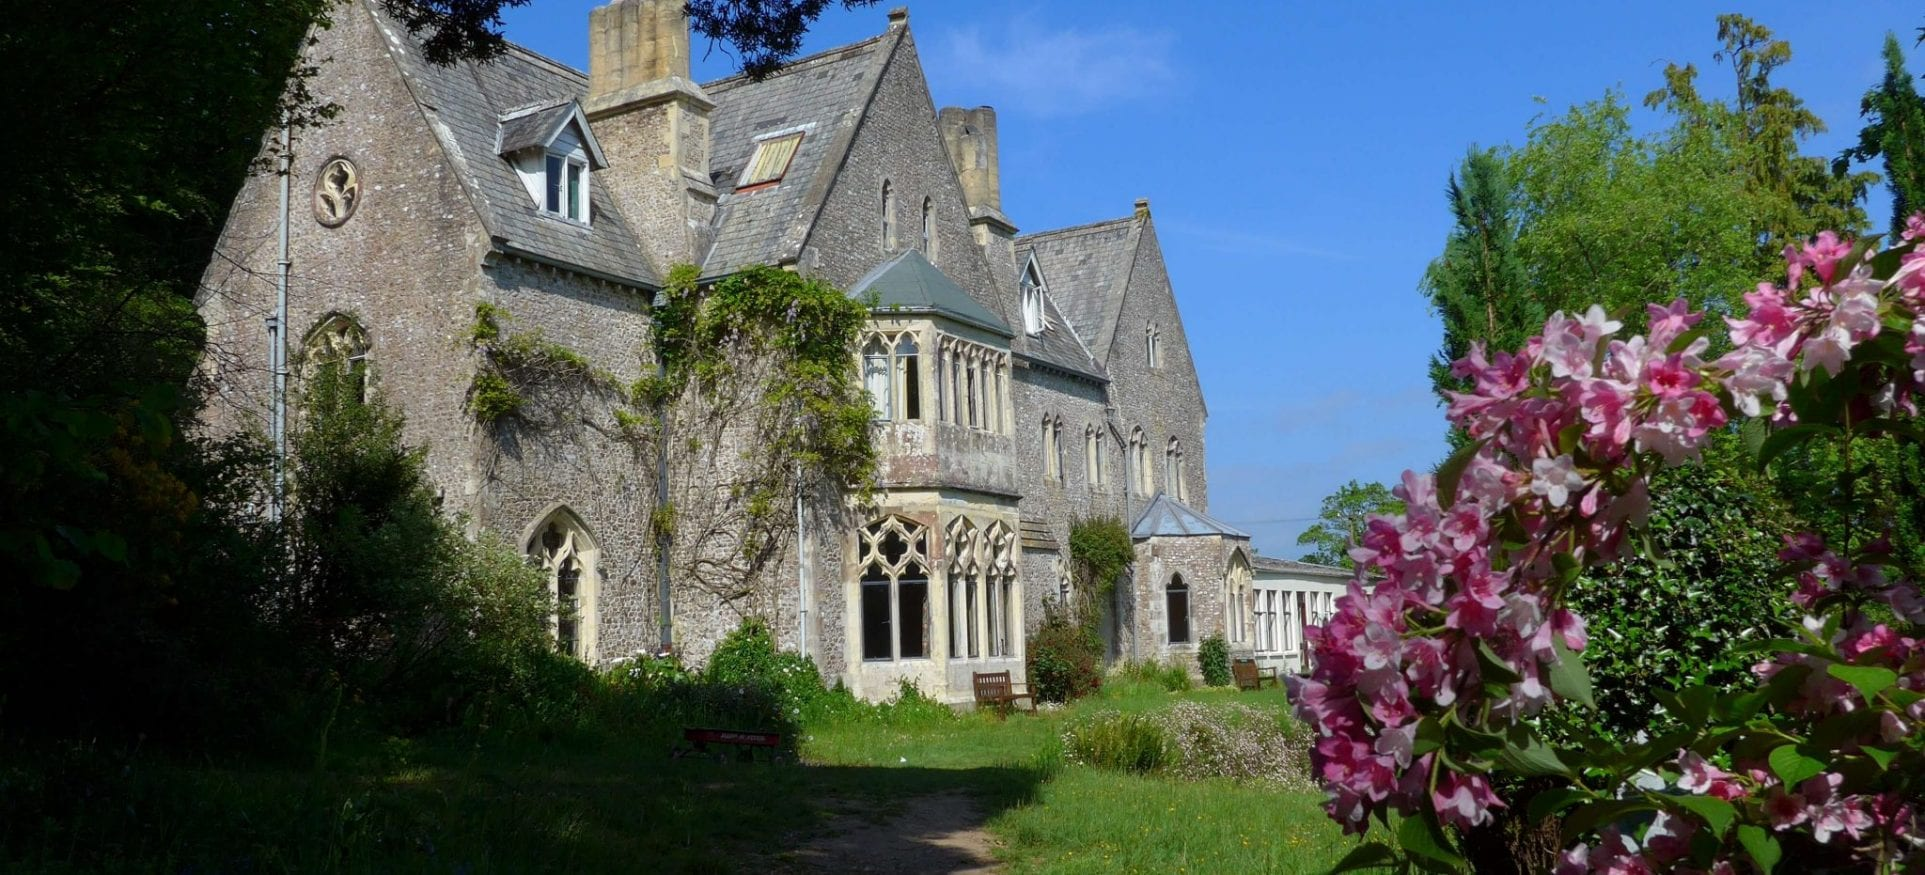 Monkton Wyld Court - gothic mansion - sustainable living